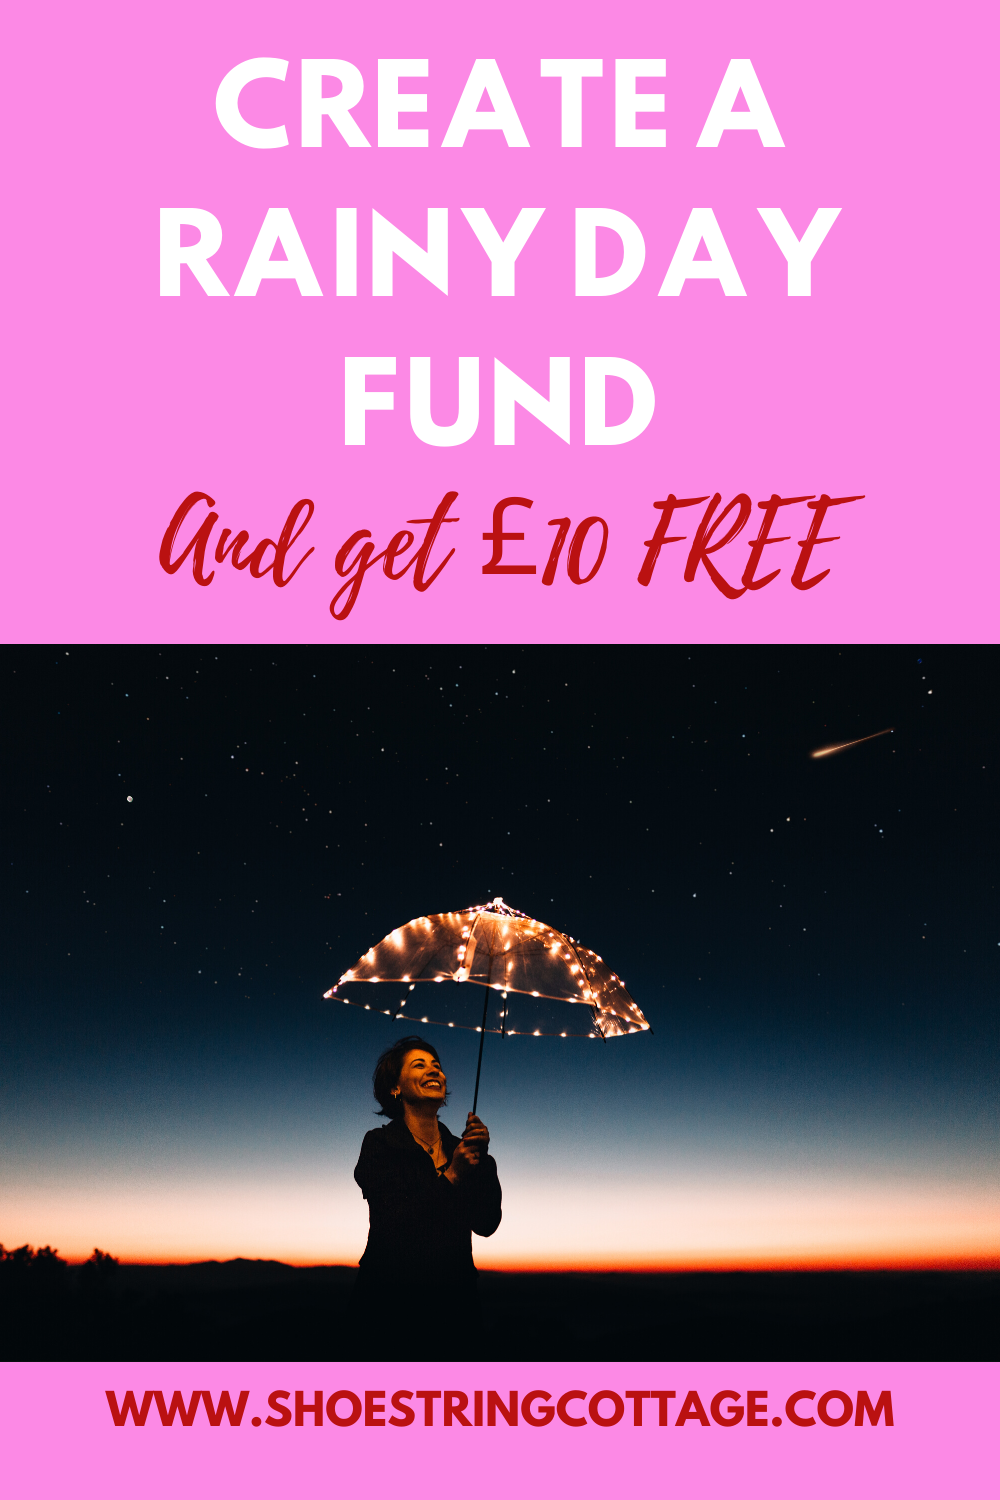 rainy day fund